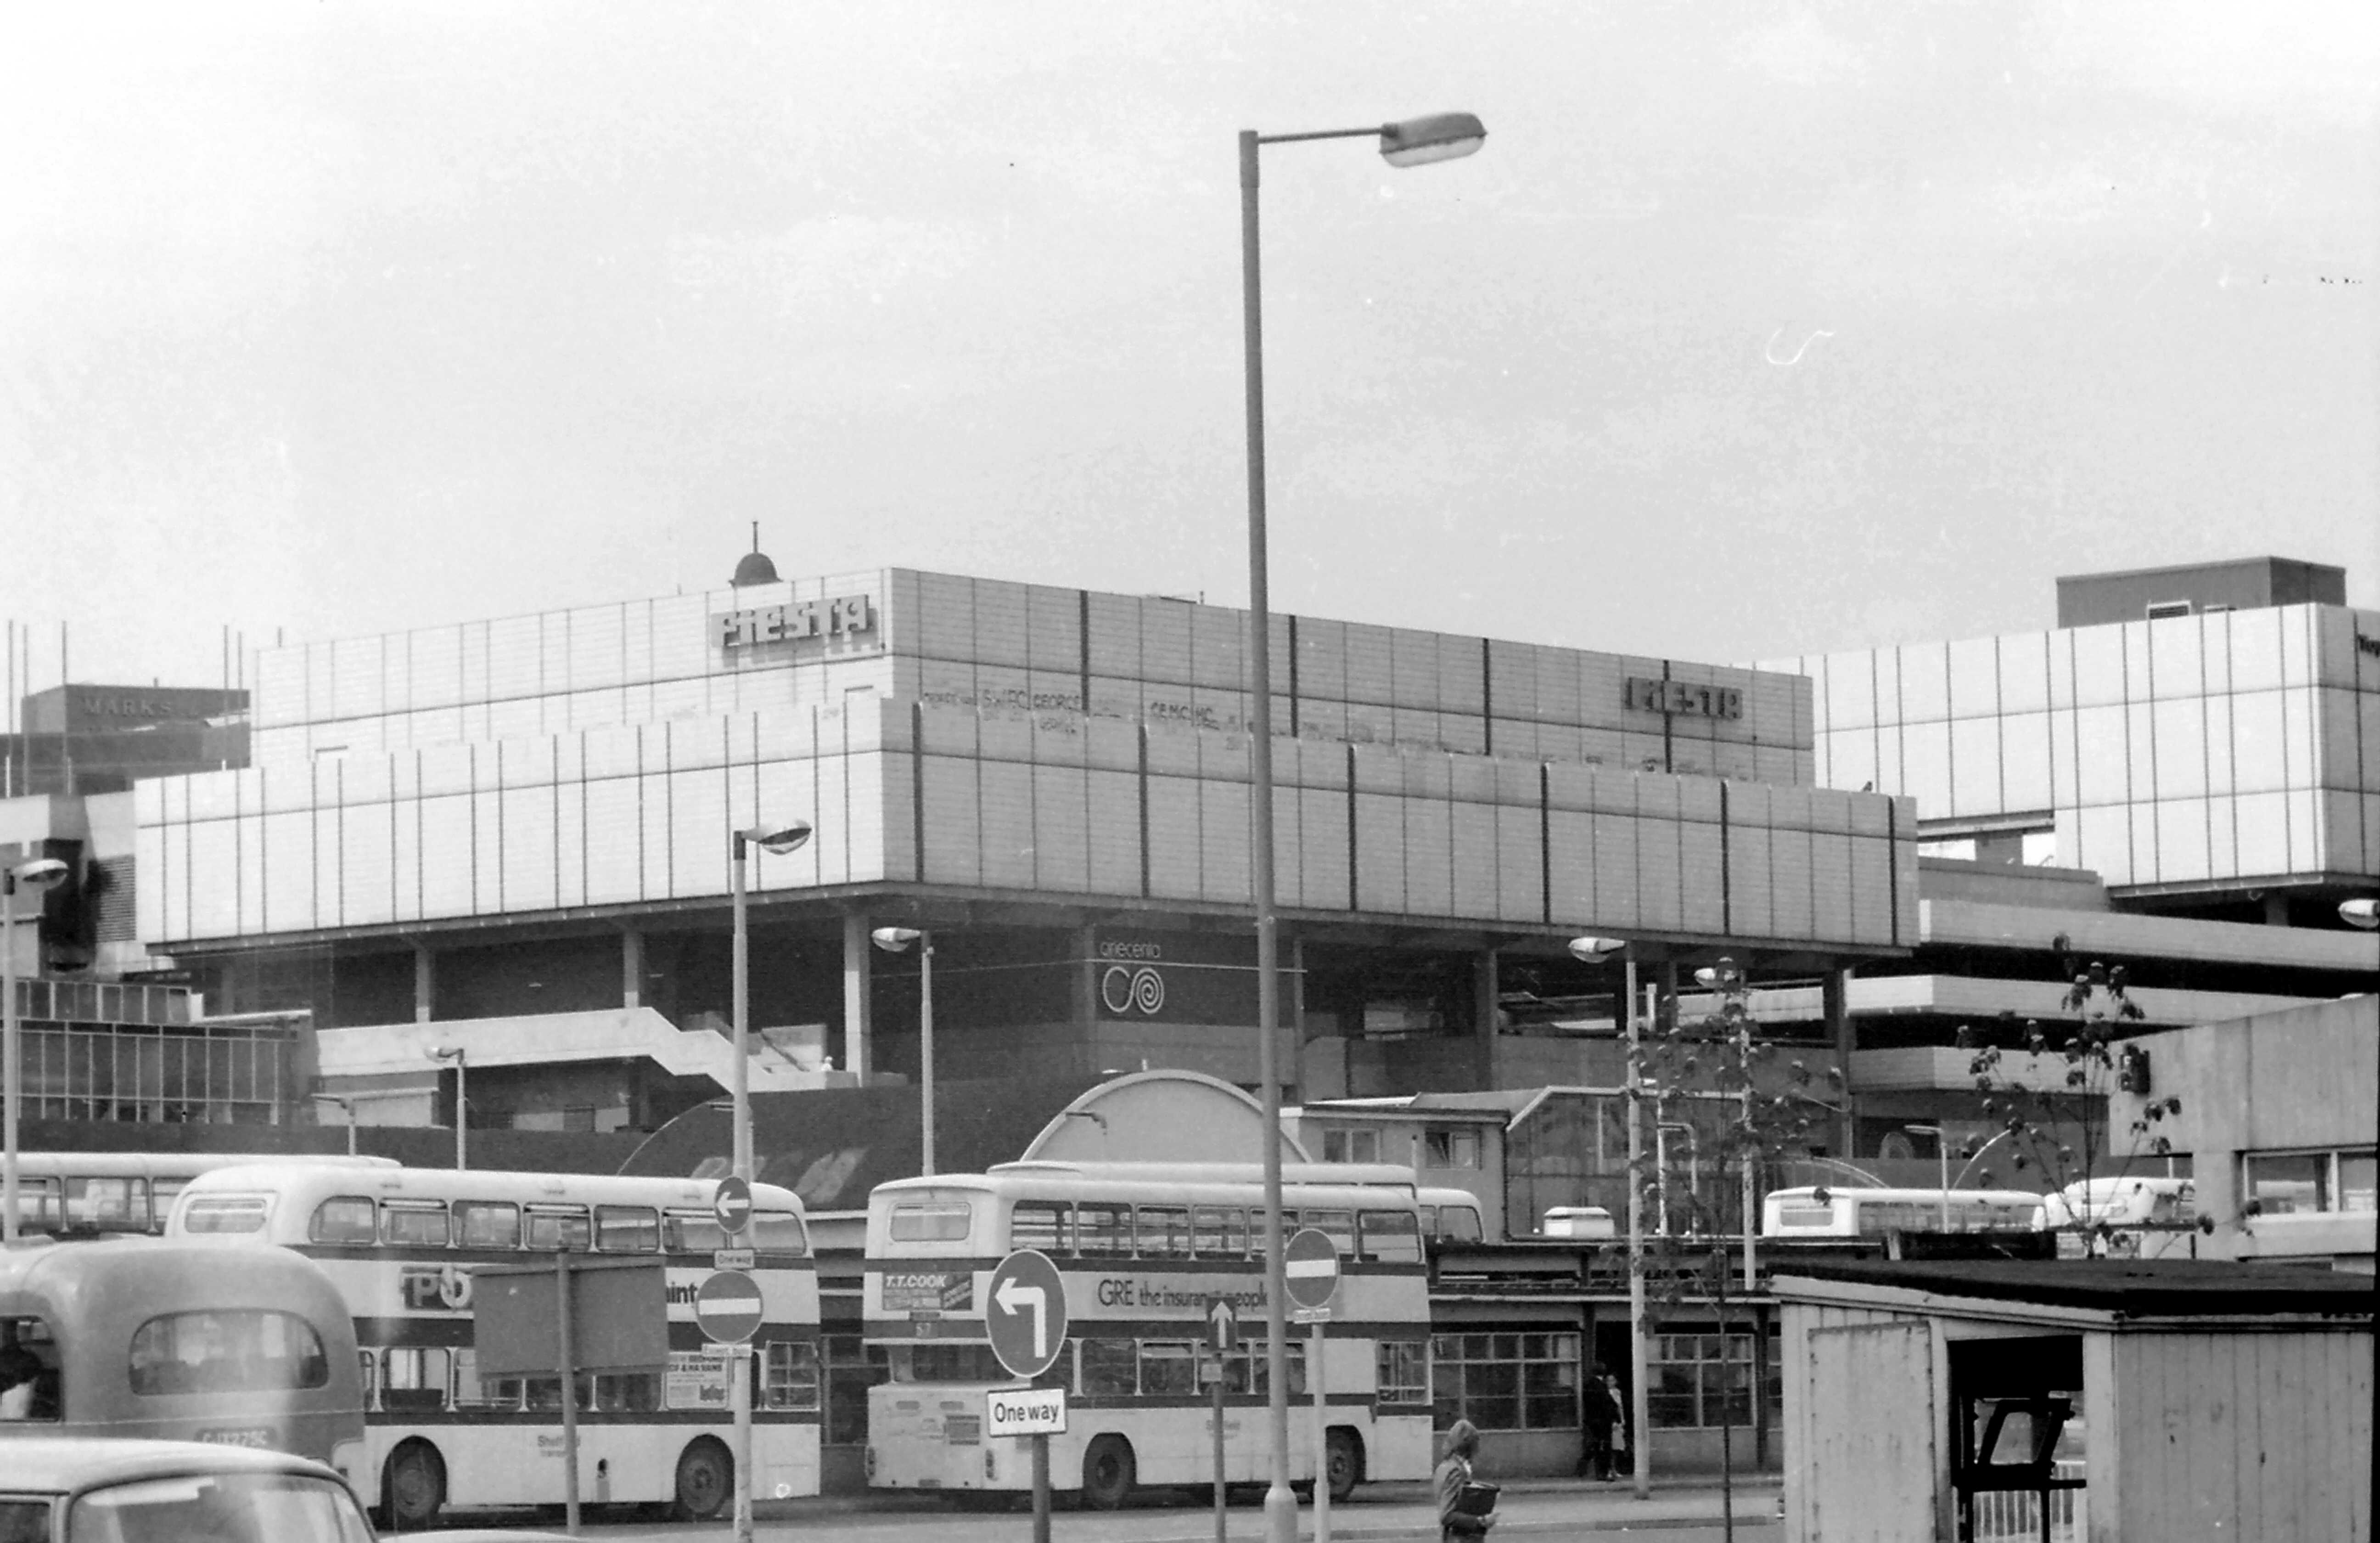 Pond Street Bus Station